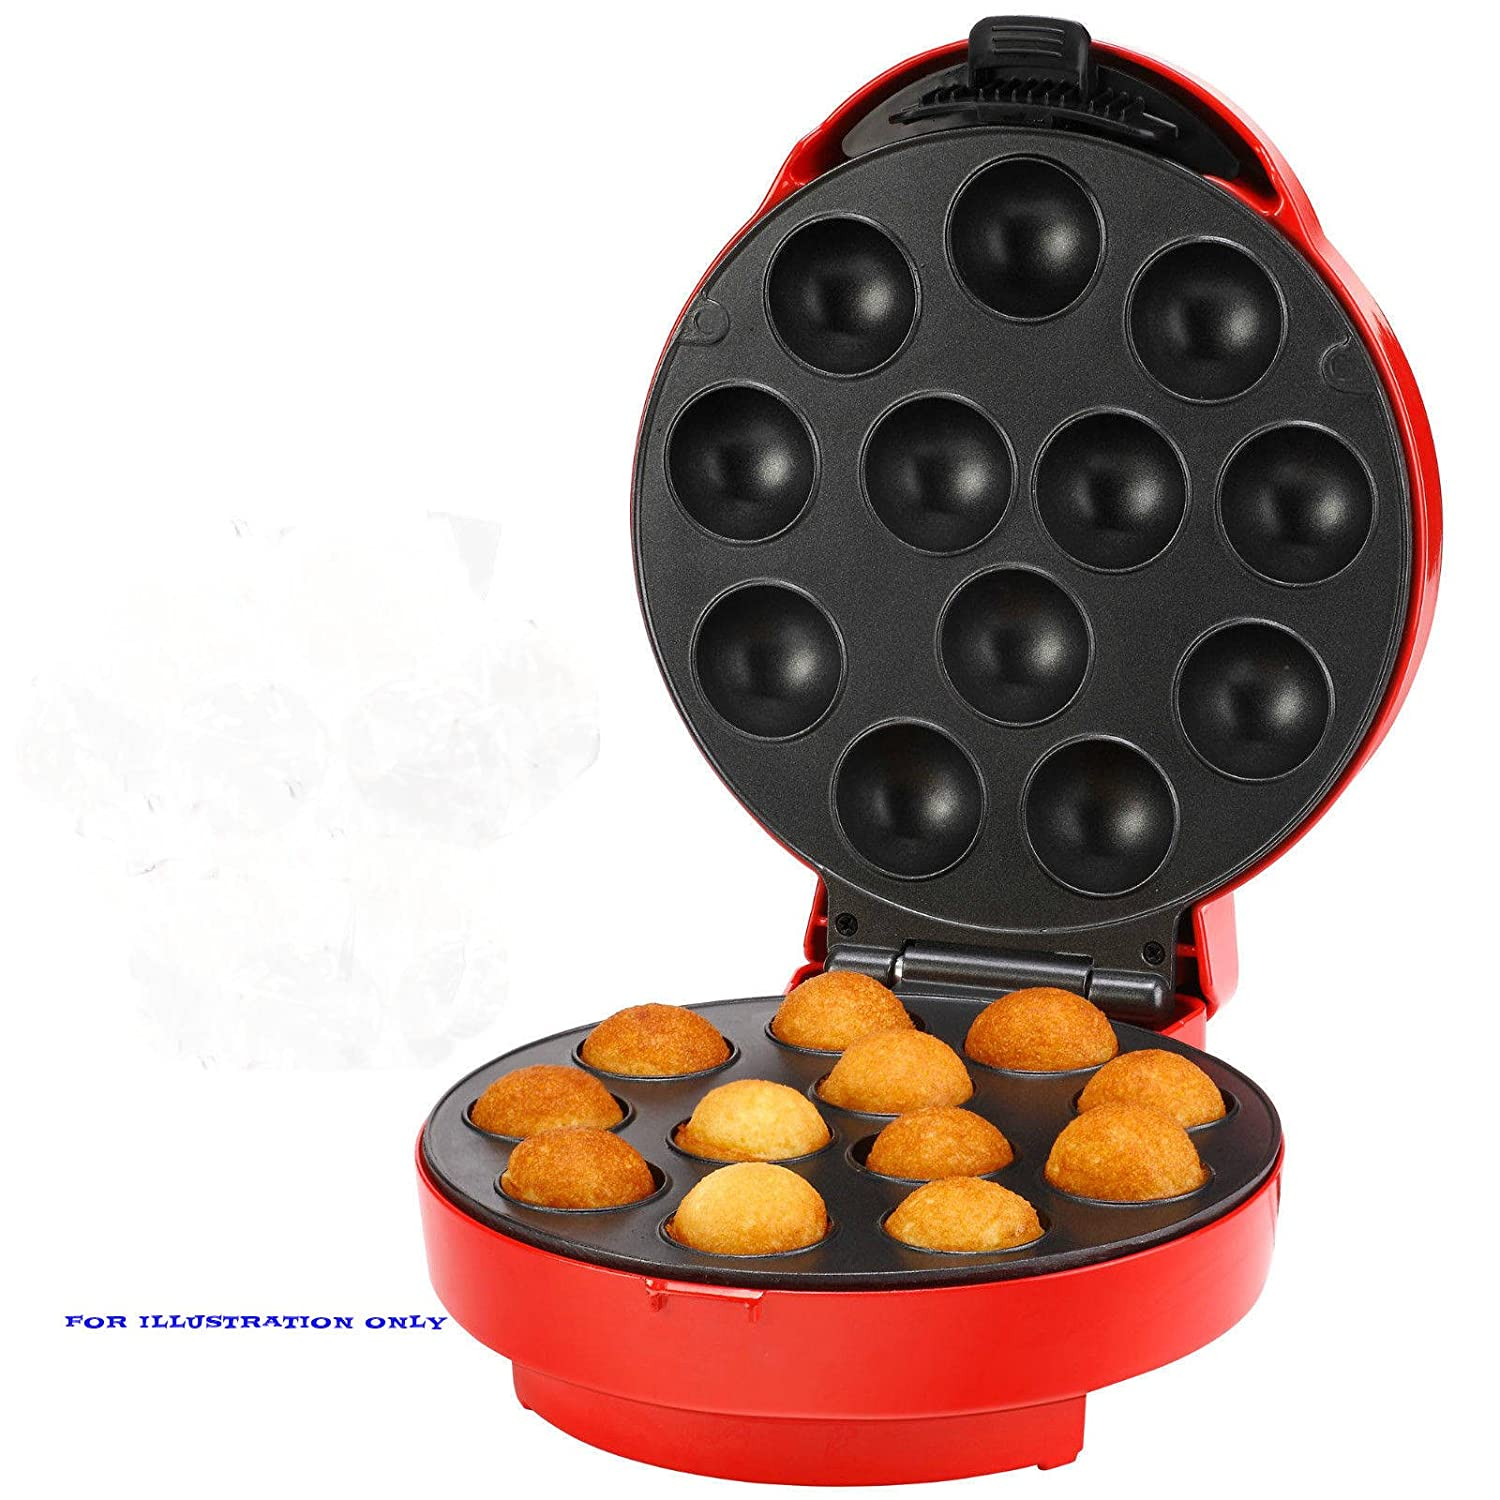 12 hole pop cake maker, non stick, easy to use.Ideal For All Family Occasions And Celebrations thumbsup